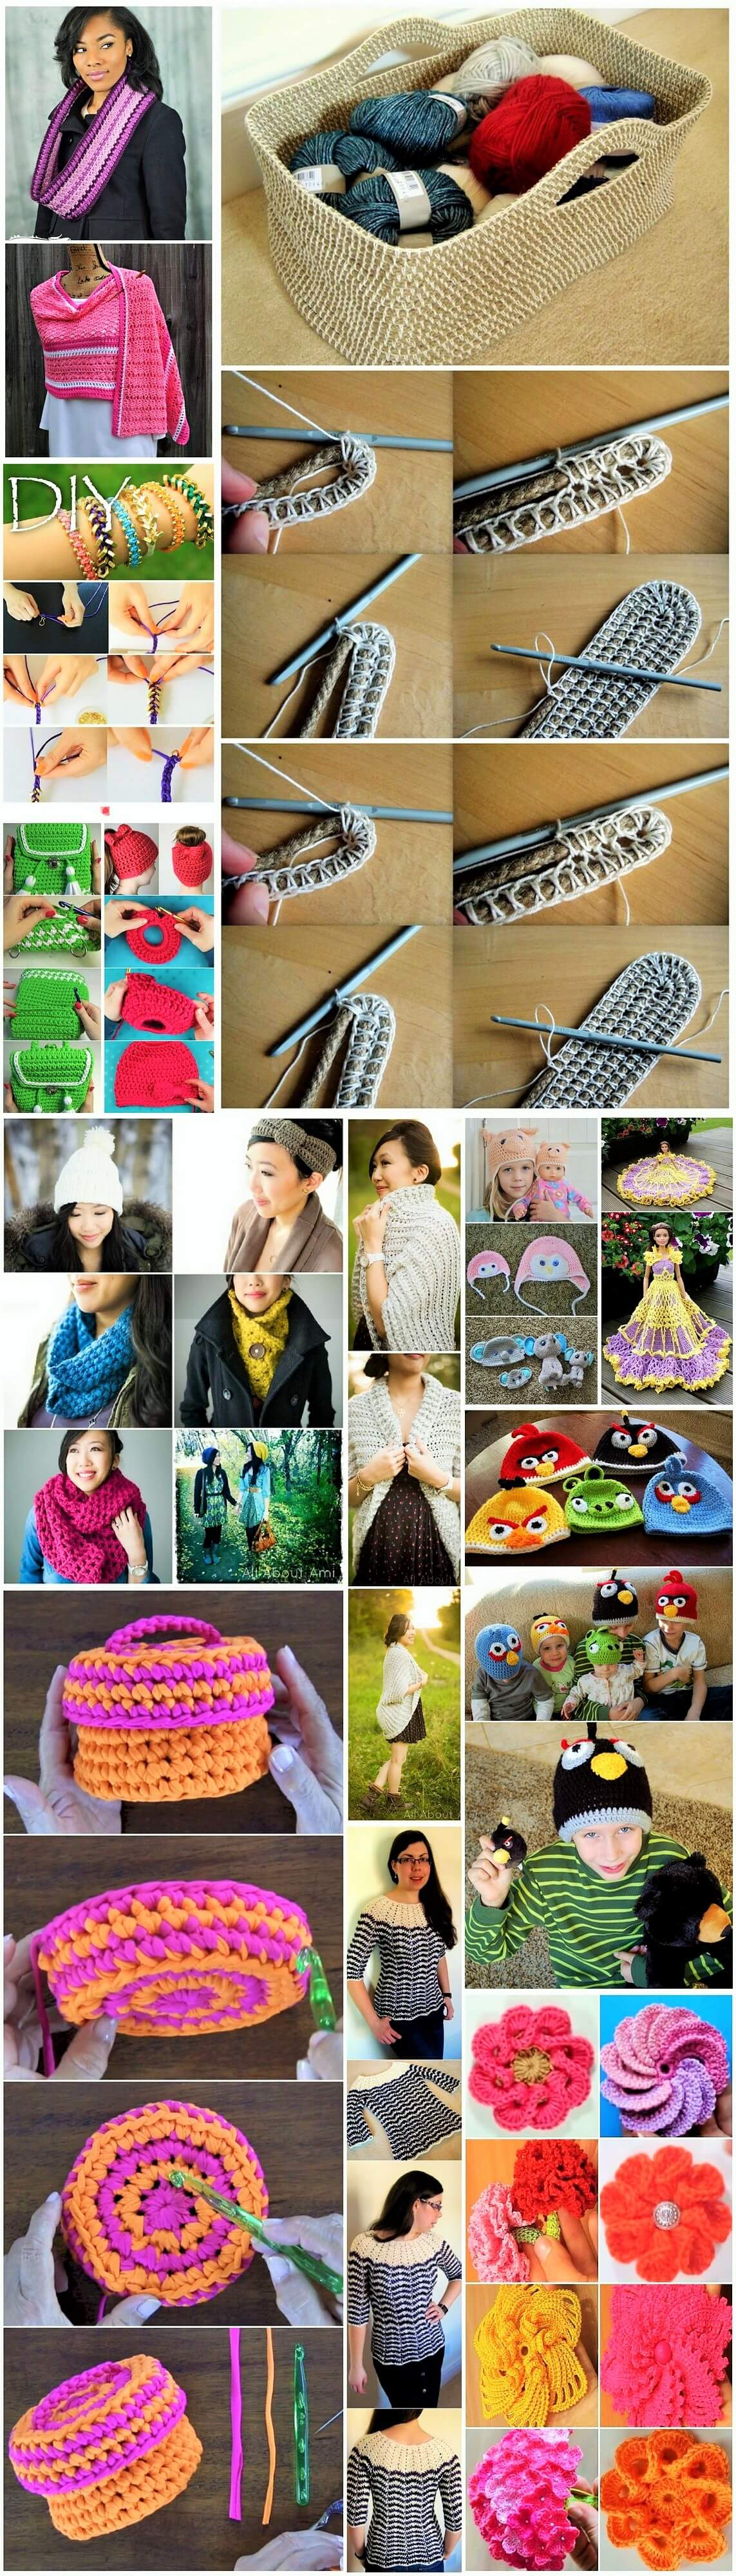 DIY Crochets Ideas